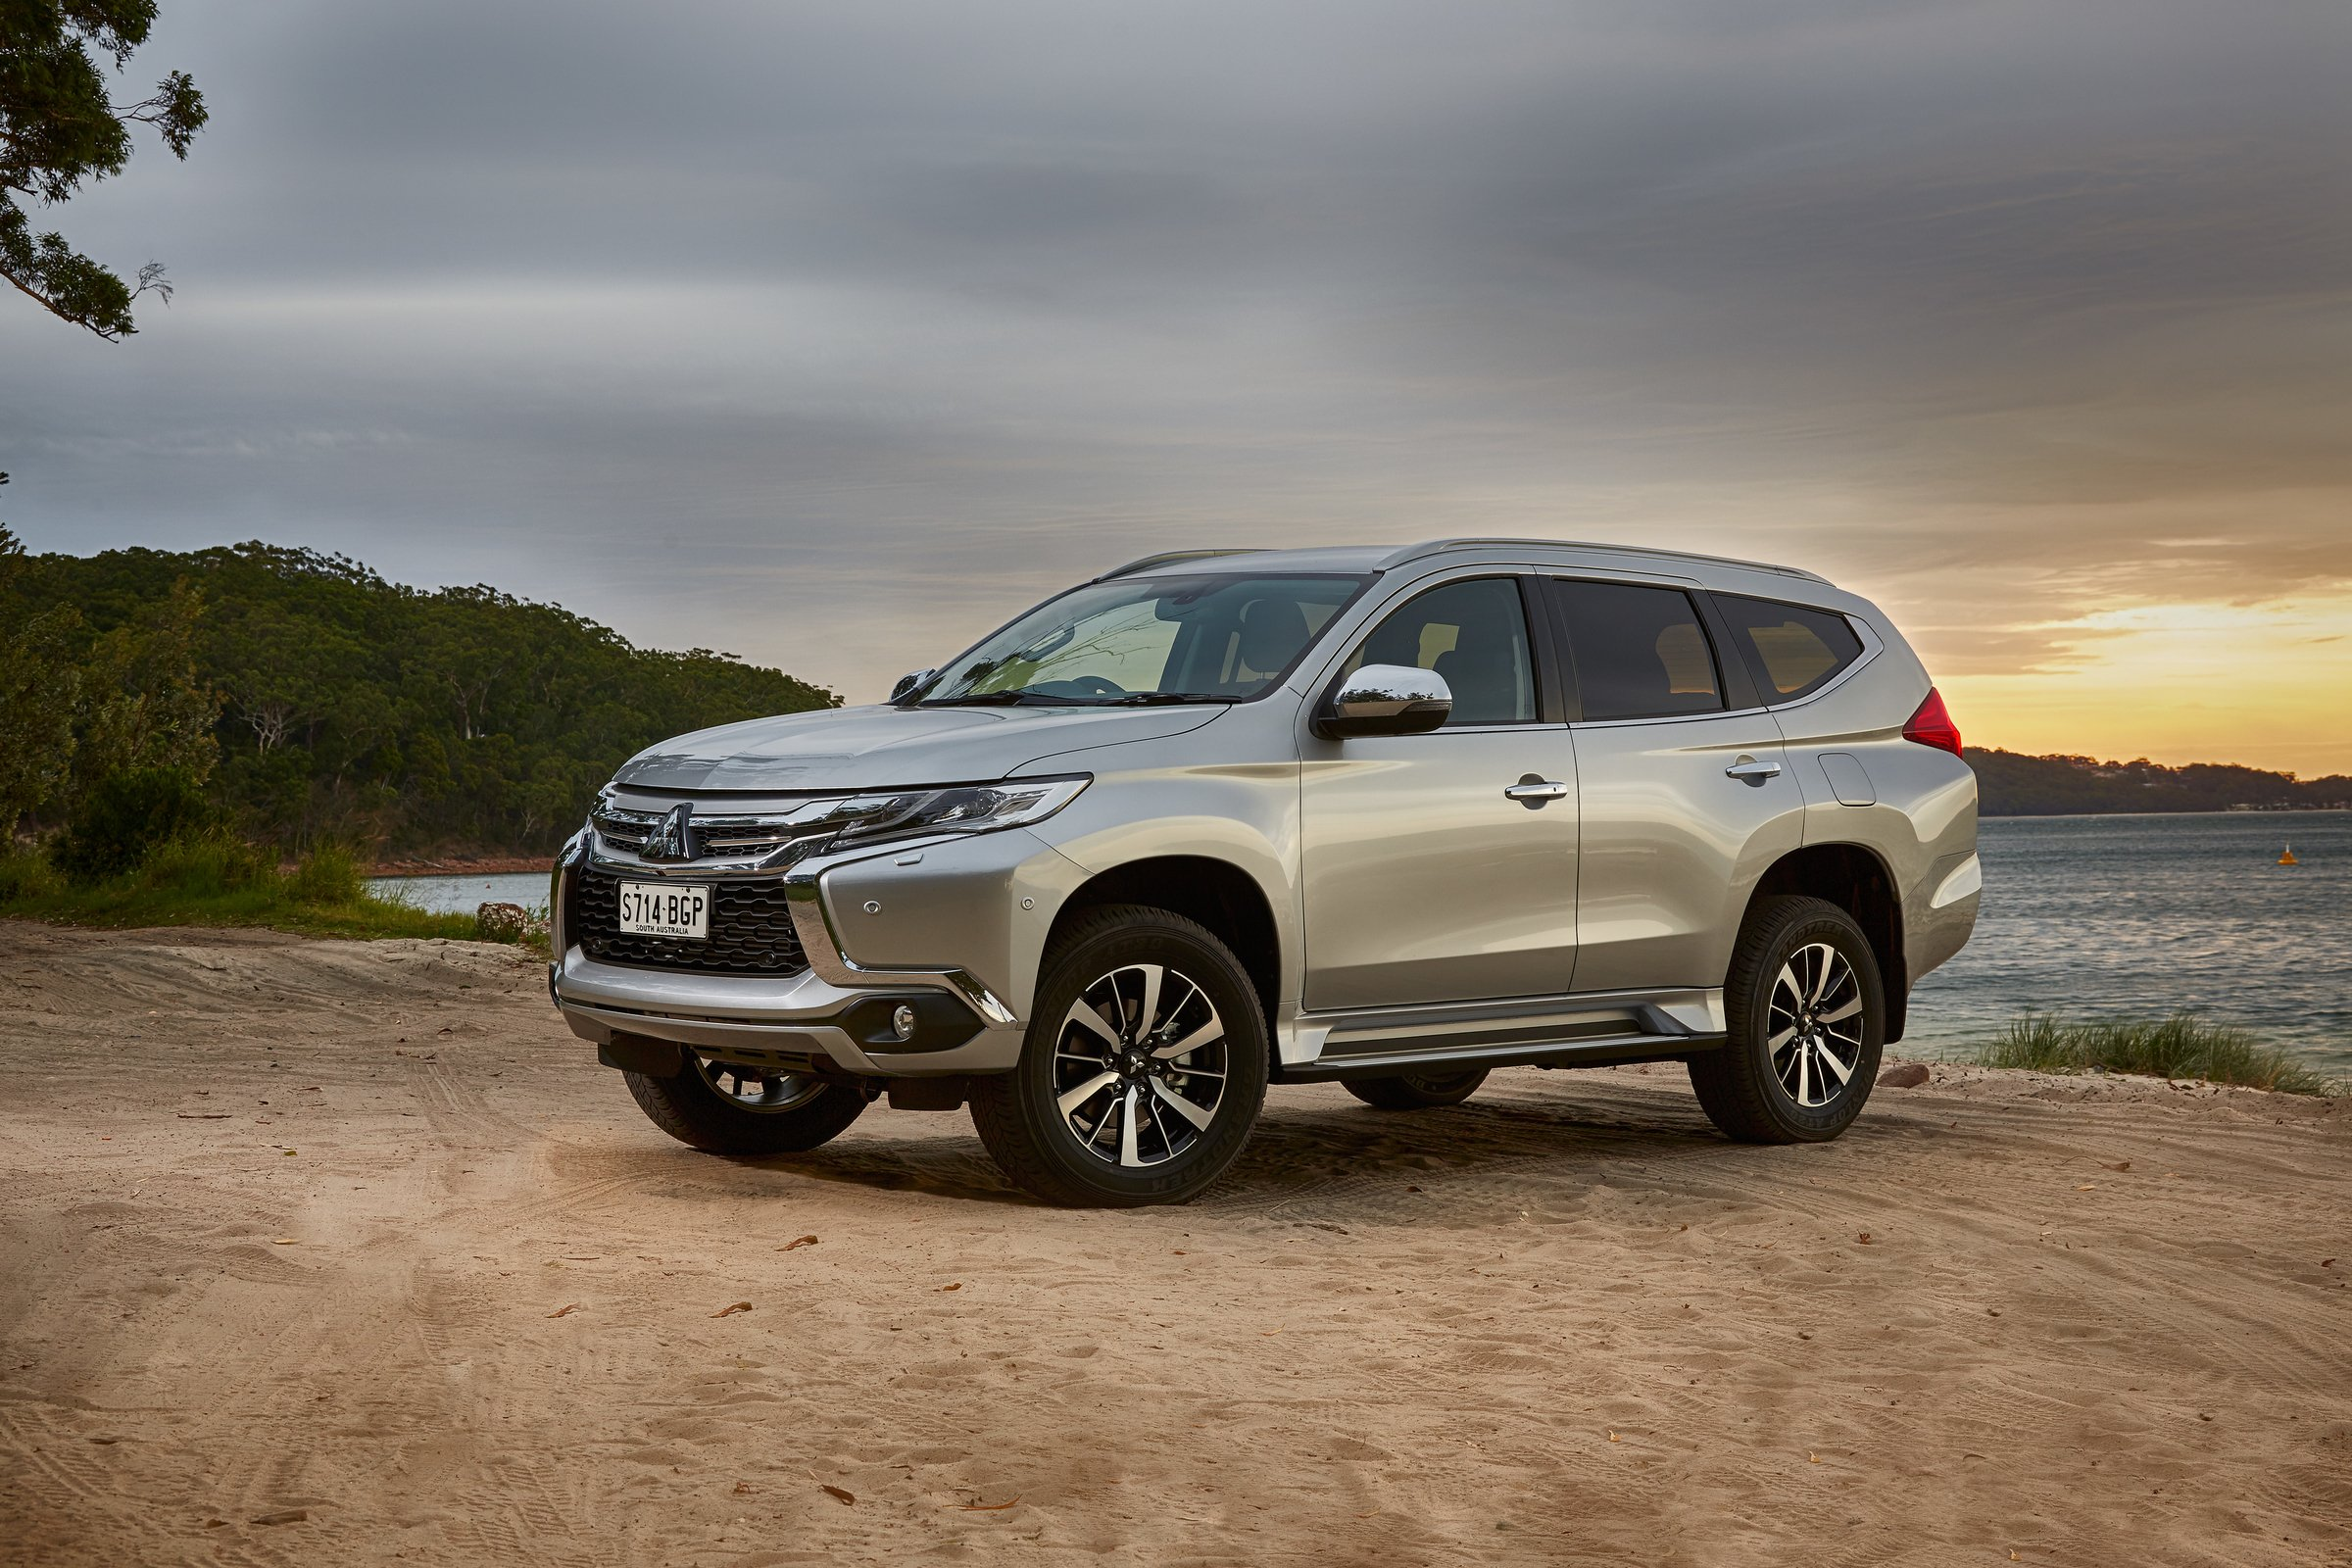 2016 Mitsubishi Pajero Sport Review - photos | CarAdvice